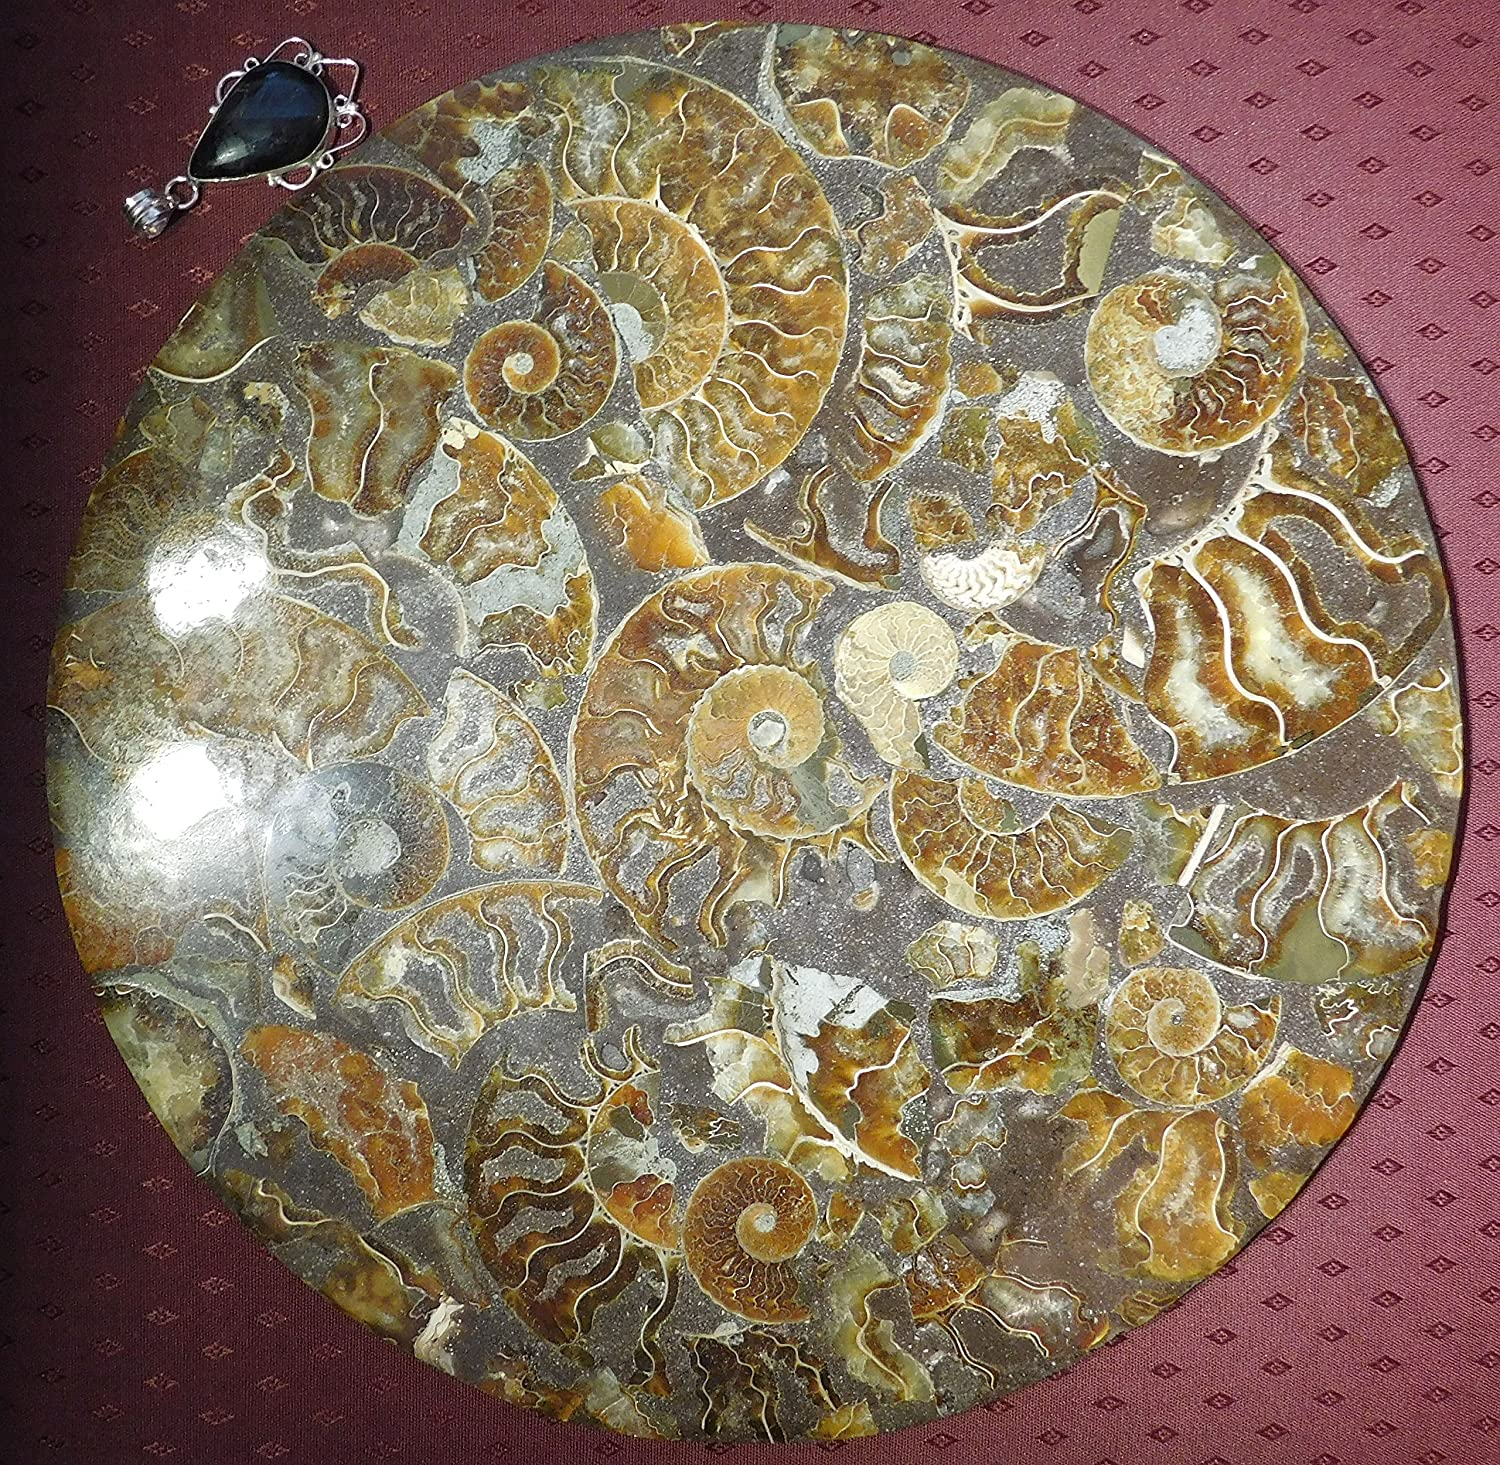 Britain-E-Spheres Crystal - LARGE 285mm x 6mm (approx. 1kg) Genuine Multiple Specimen Fossil Cleoniceras Ammonite Shell Conglomerate Disc with Bonus Rustic Hand Made Silver Plated Recycled Crystal Pendant (Tiger Iron) - ***SINGLE UNIQUE ITEM LISTING***